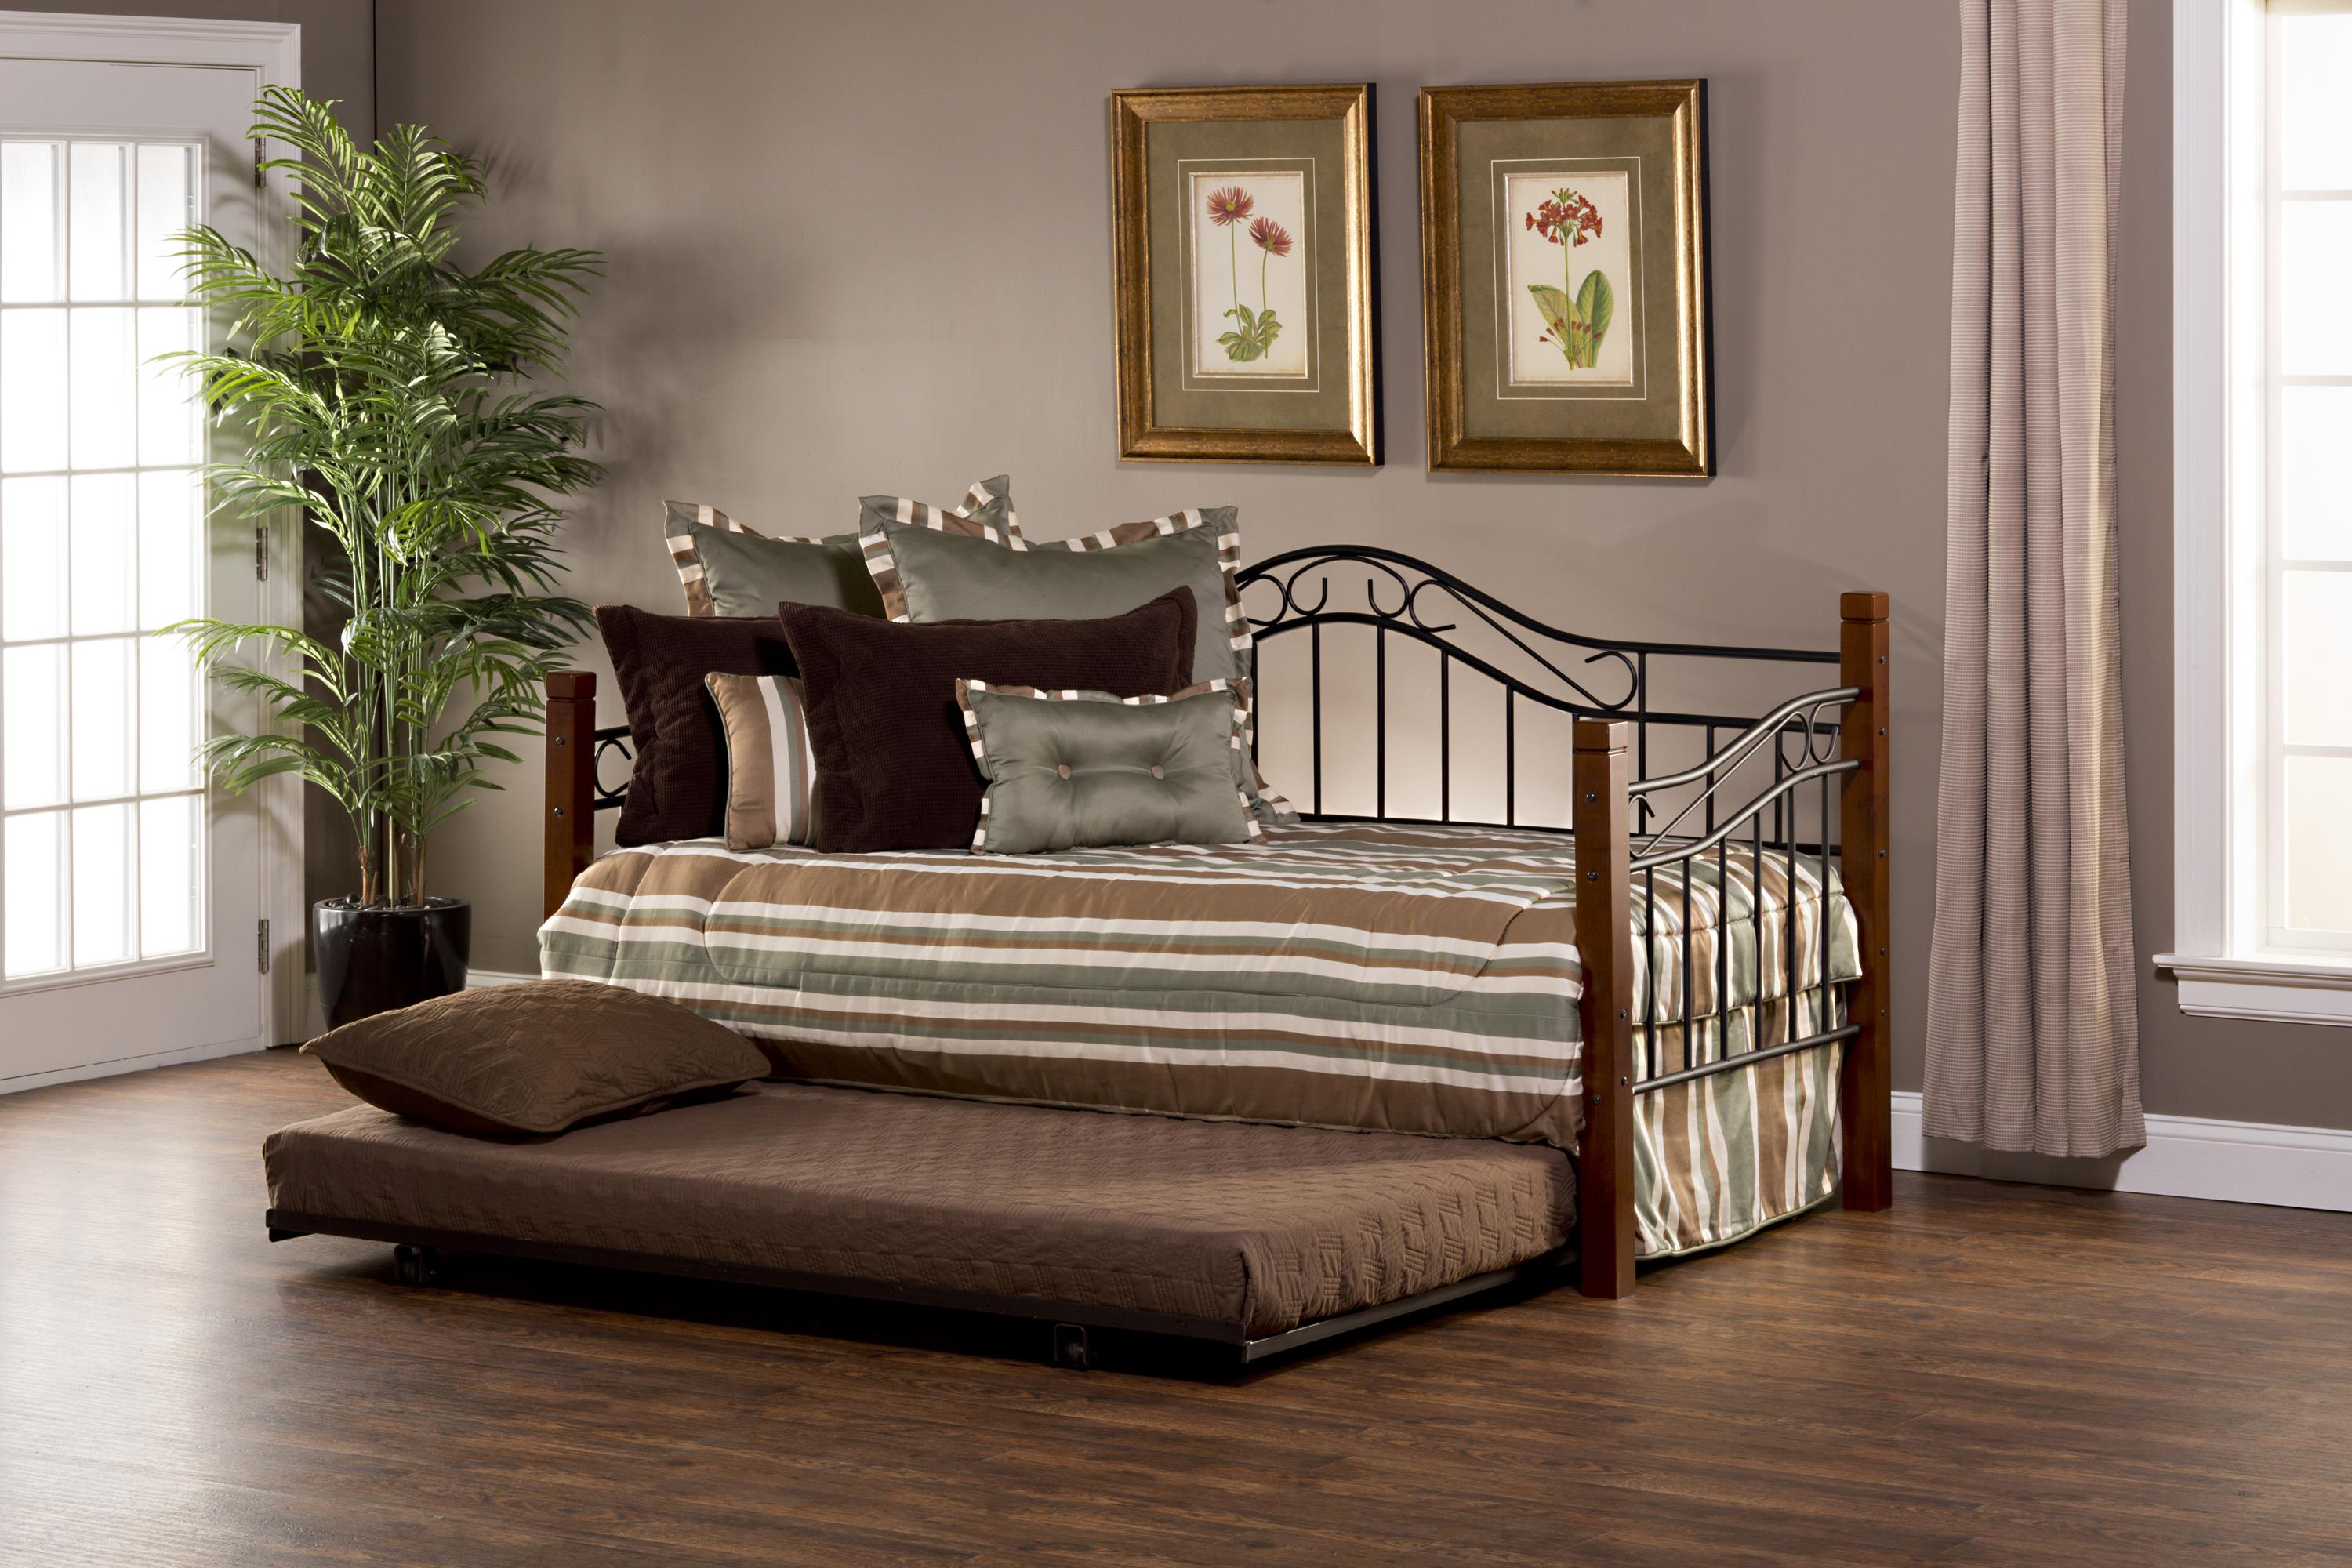 Hillsdale Daybeds Matson Daybed with Suspension Deck and Trund - Item Number: 1159DBLHTR